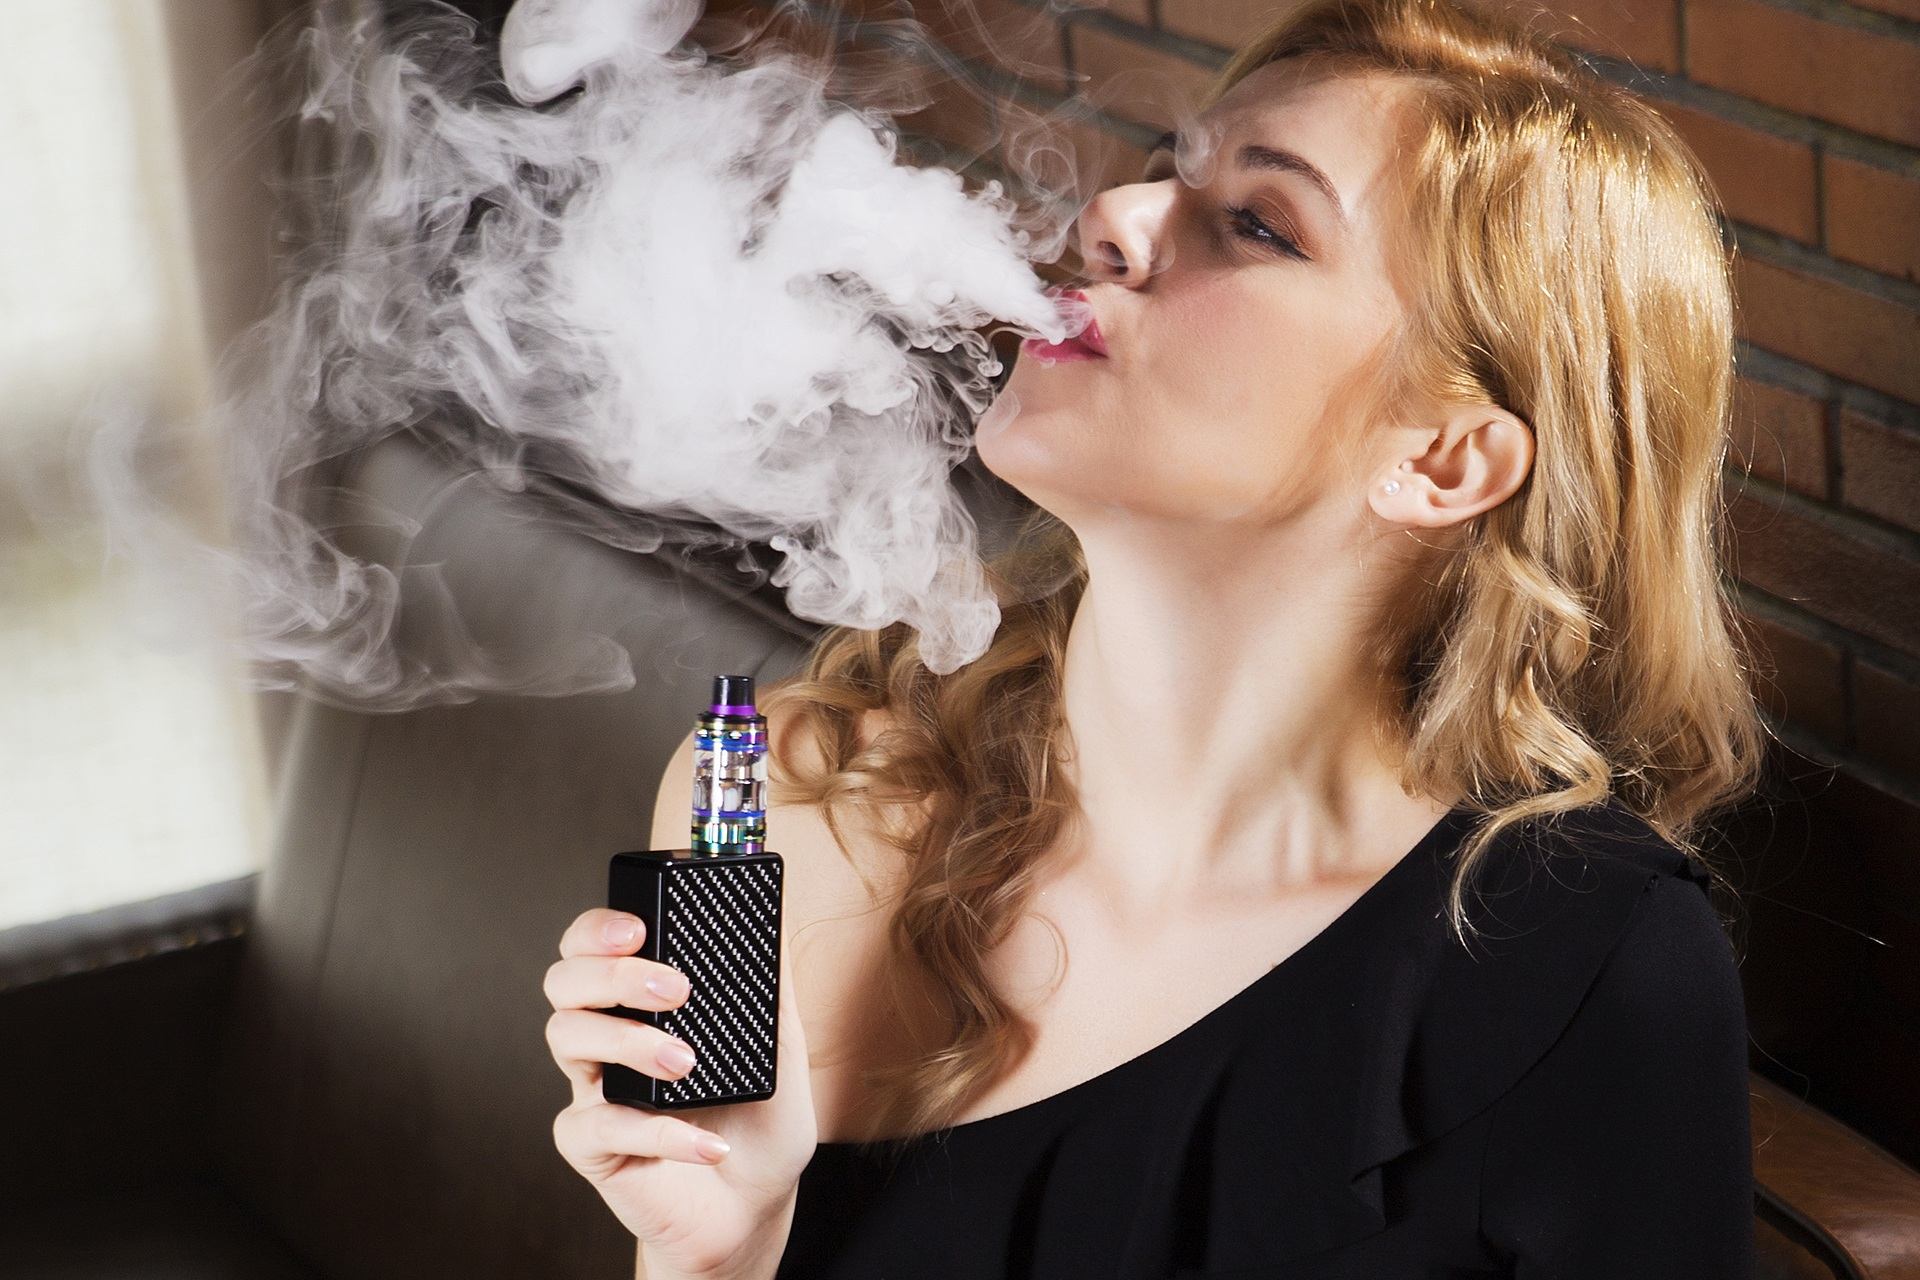 electronic cigarettes often have product liability issues